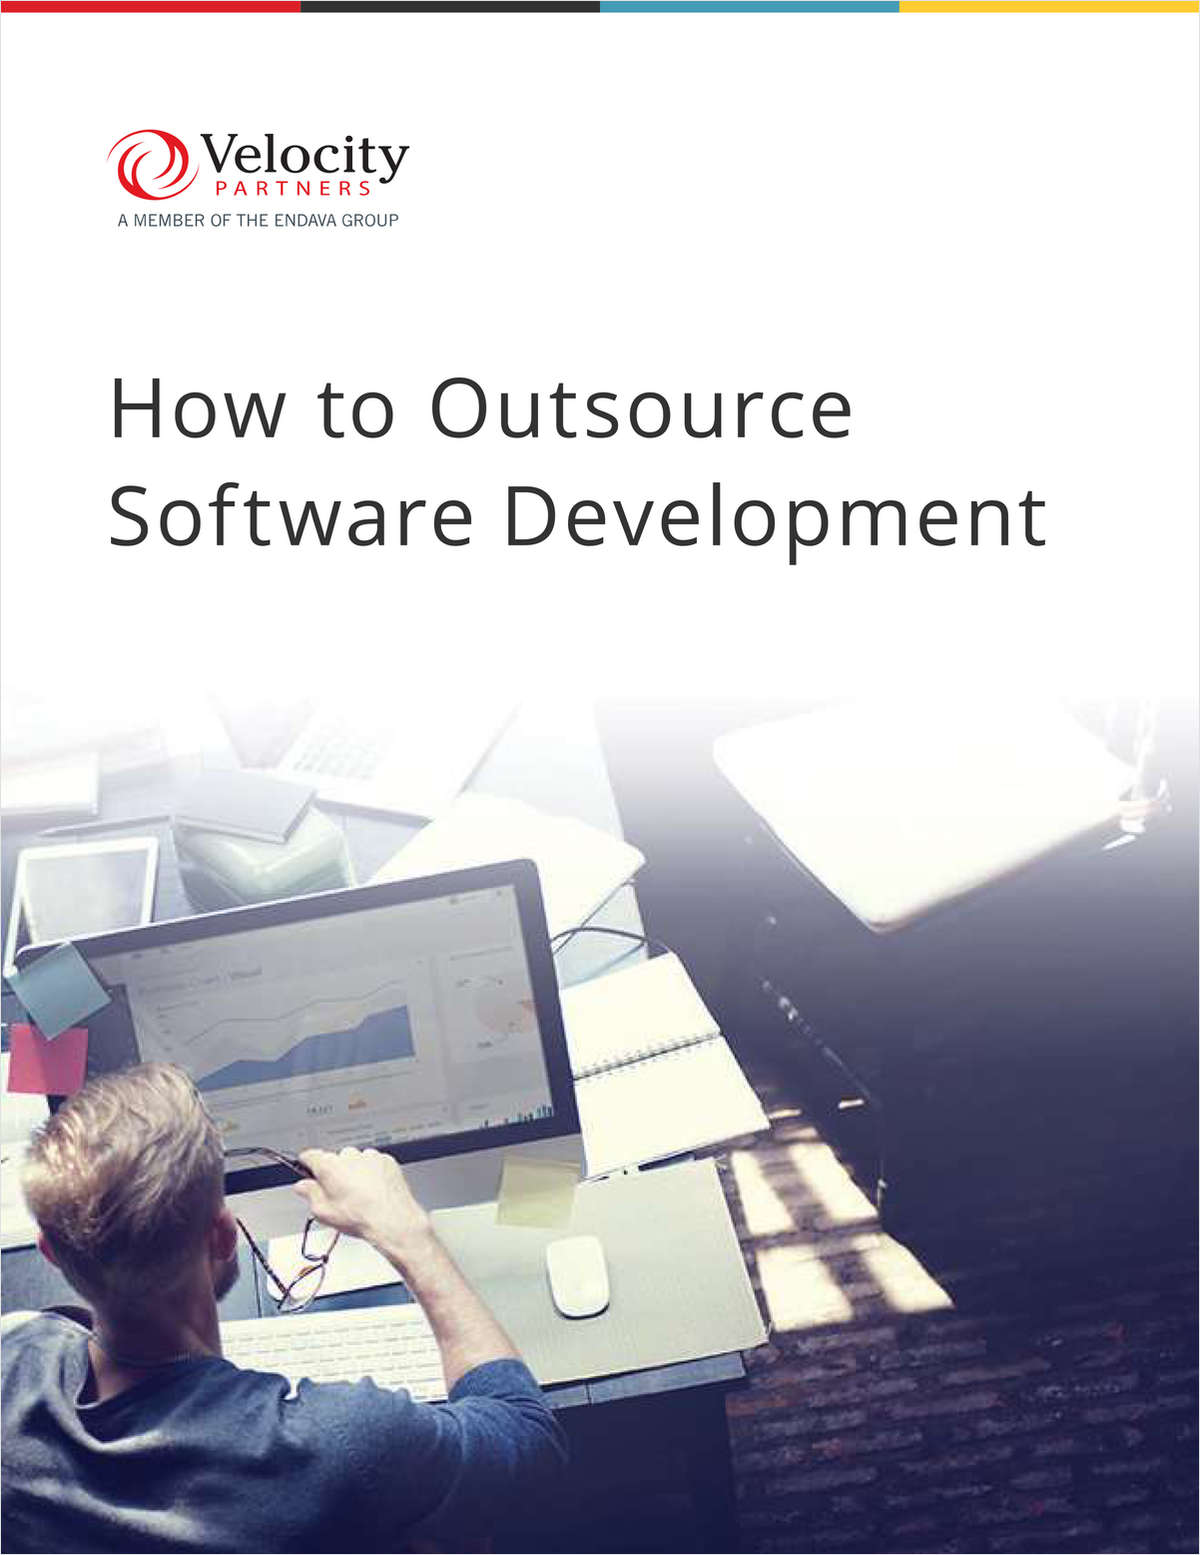 Learn the Right Way to Outsource Software Development